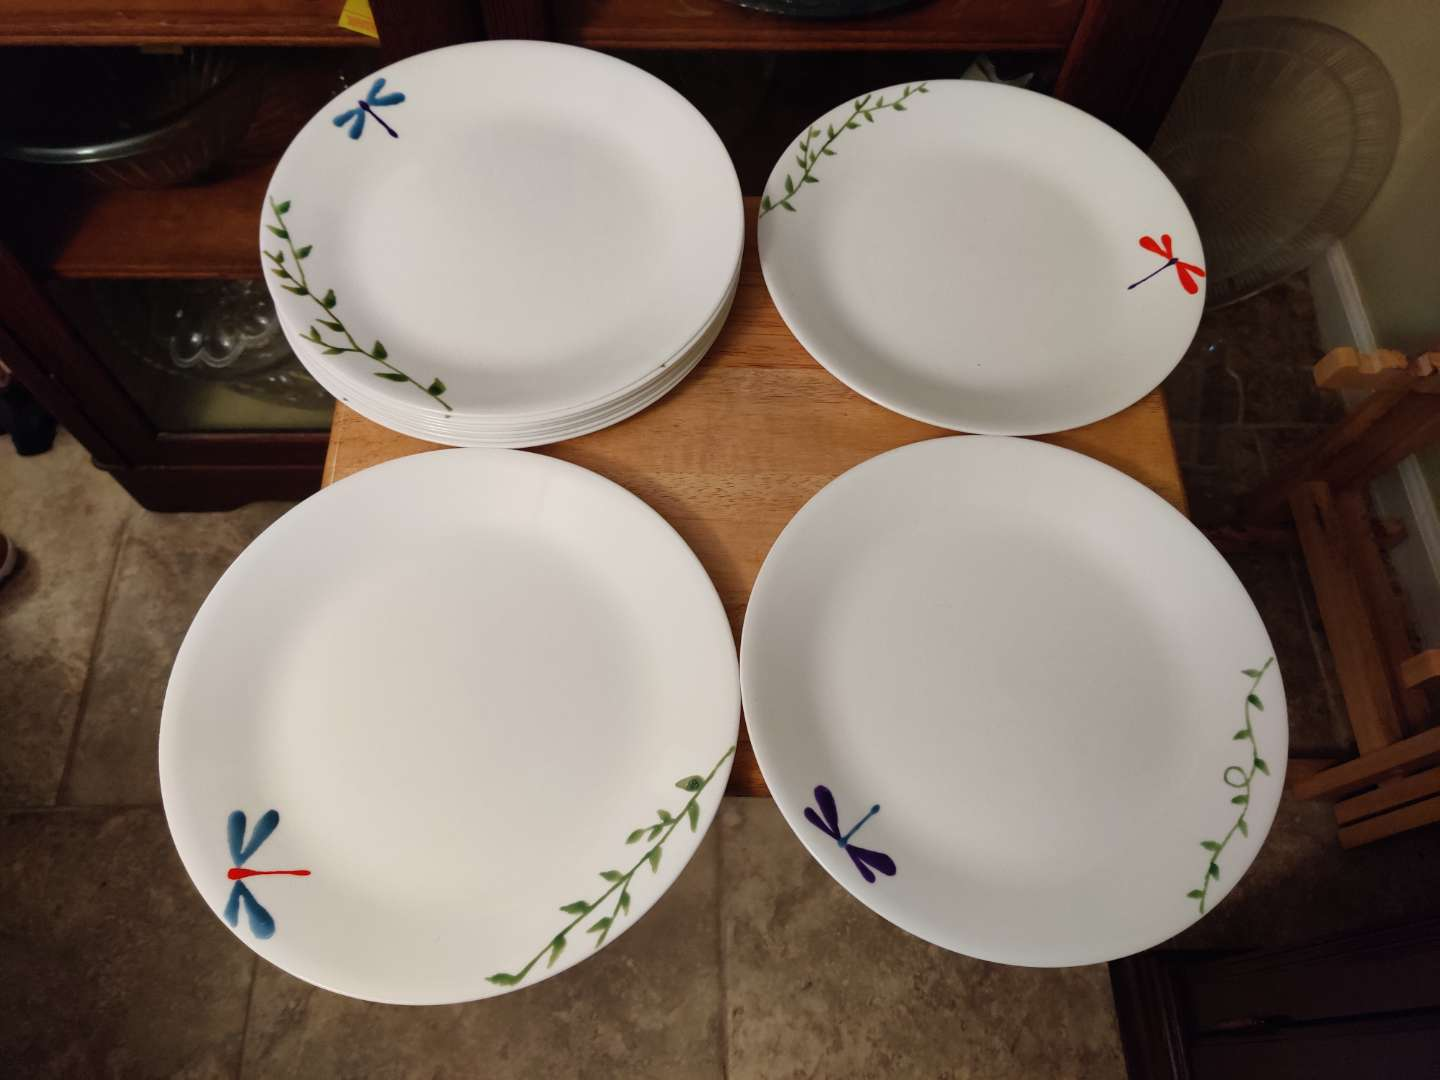 # 133 set of 11 corelle hand-painted dragonfly plates different colors